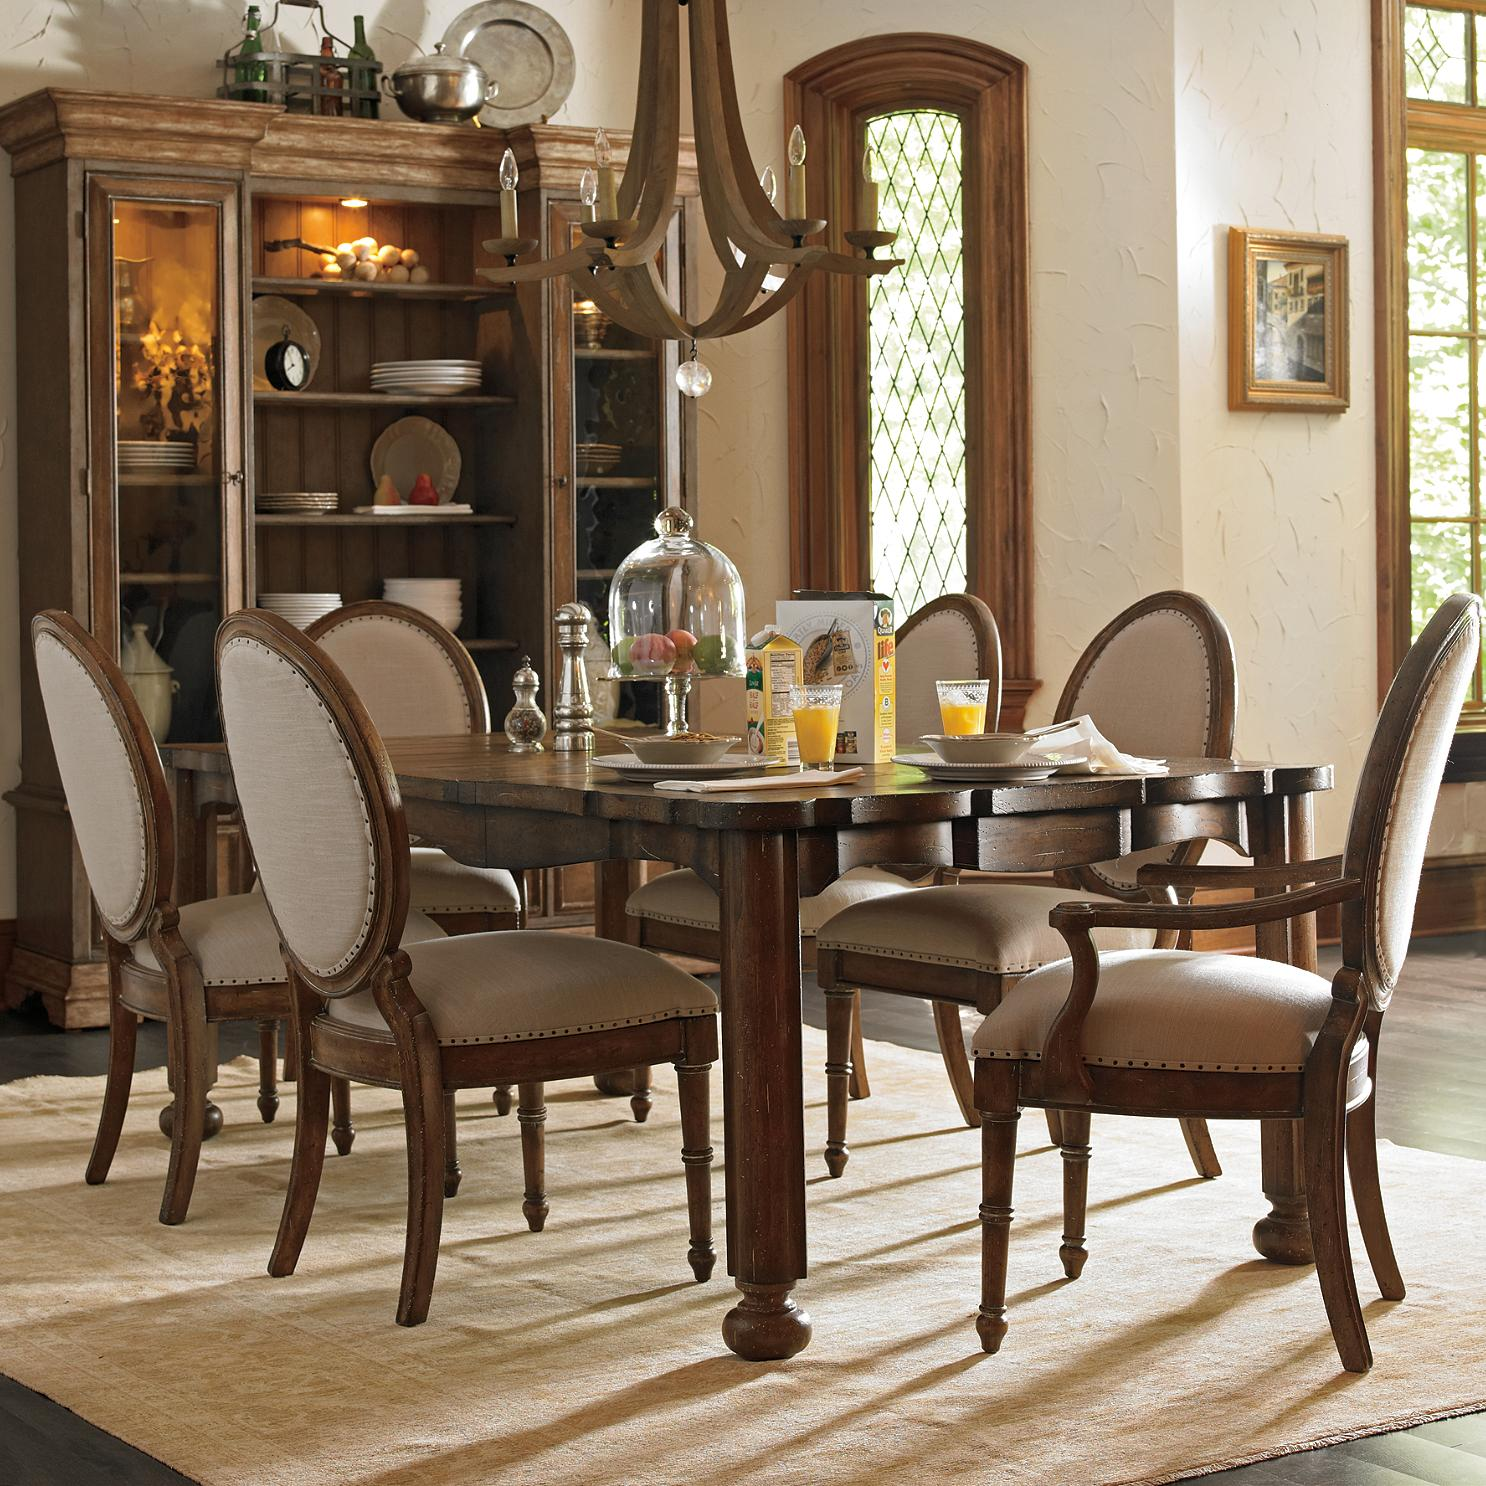 Farmhouse Dining Room Stanley Furniture